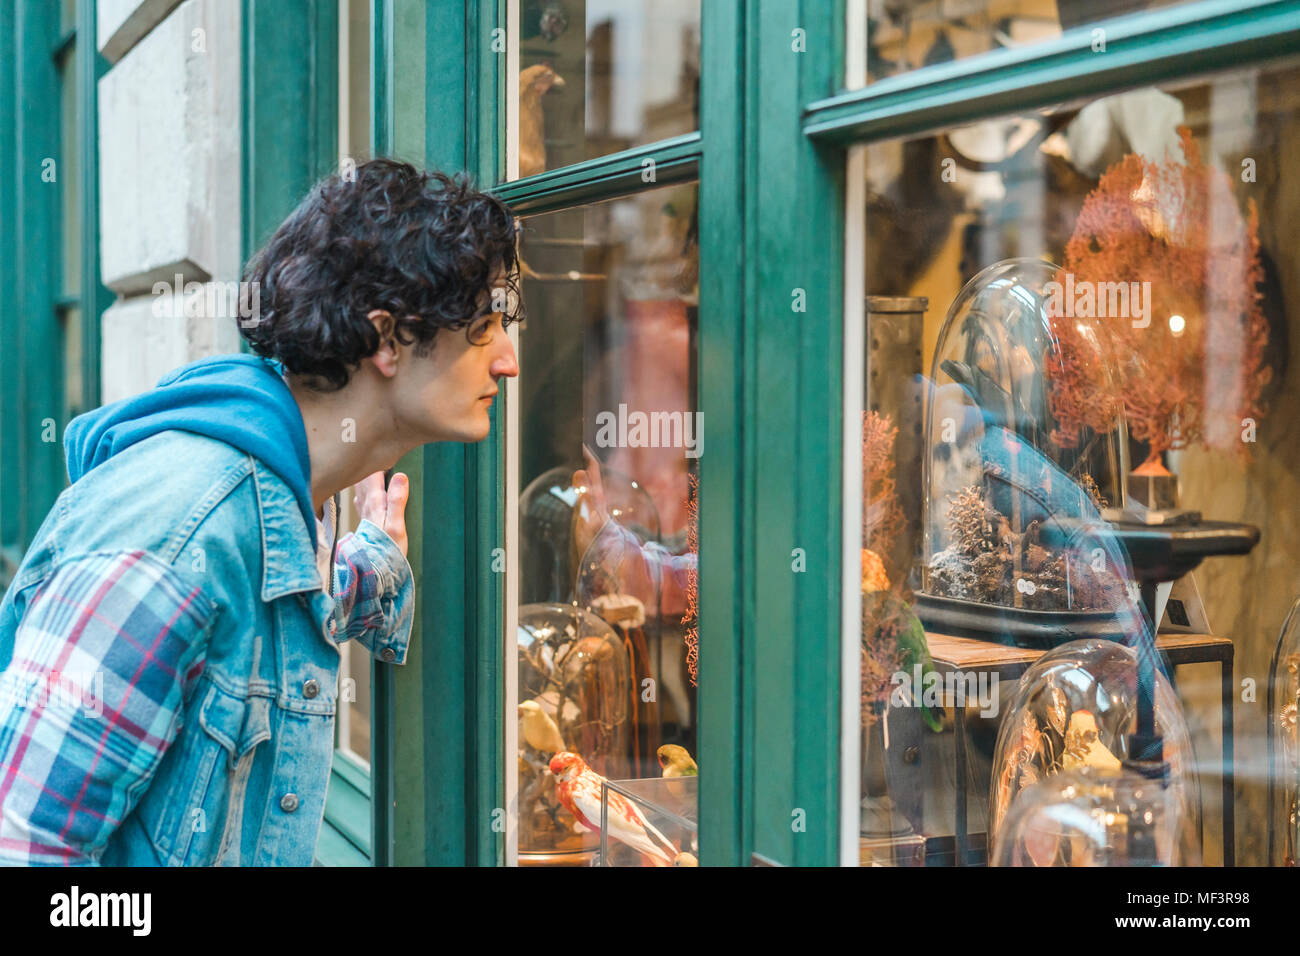 Portrait of young man looking through windowpane - Stock Image